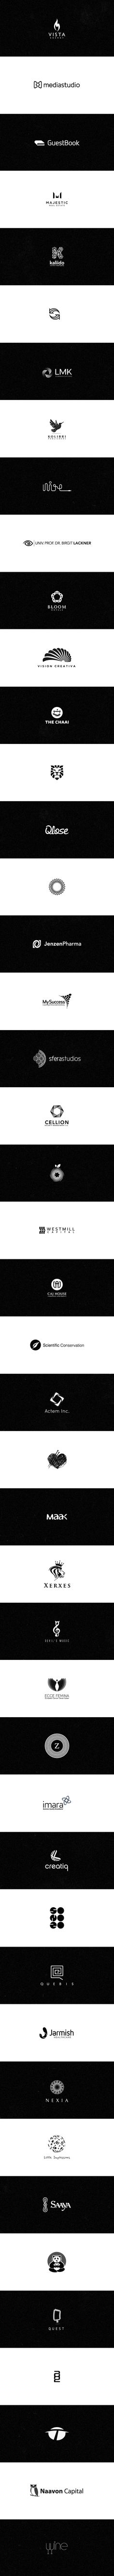 Logos 2010-2012 by almosh82 , via Behance